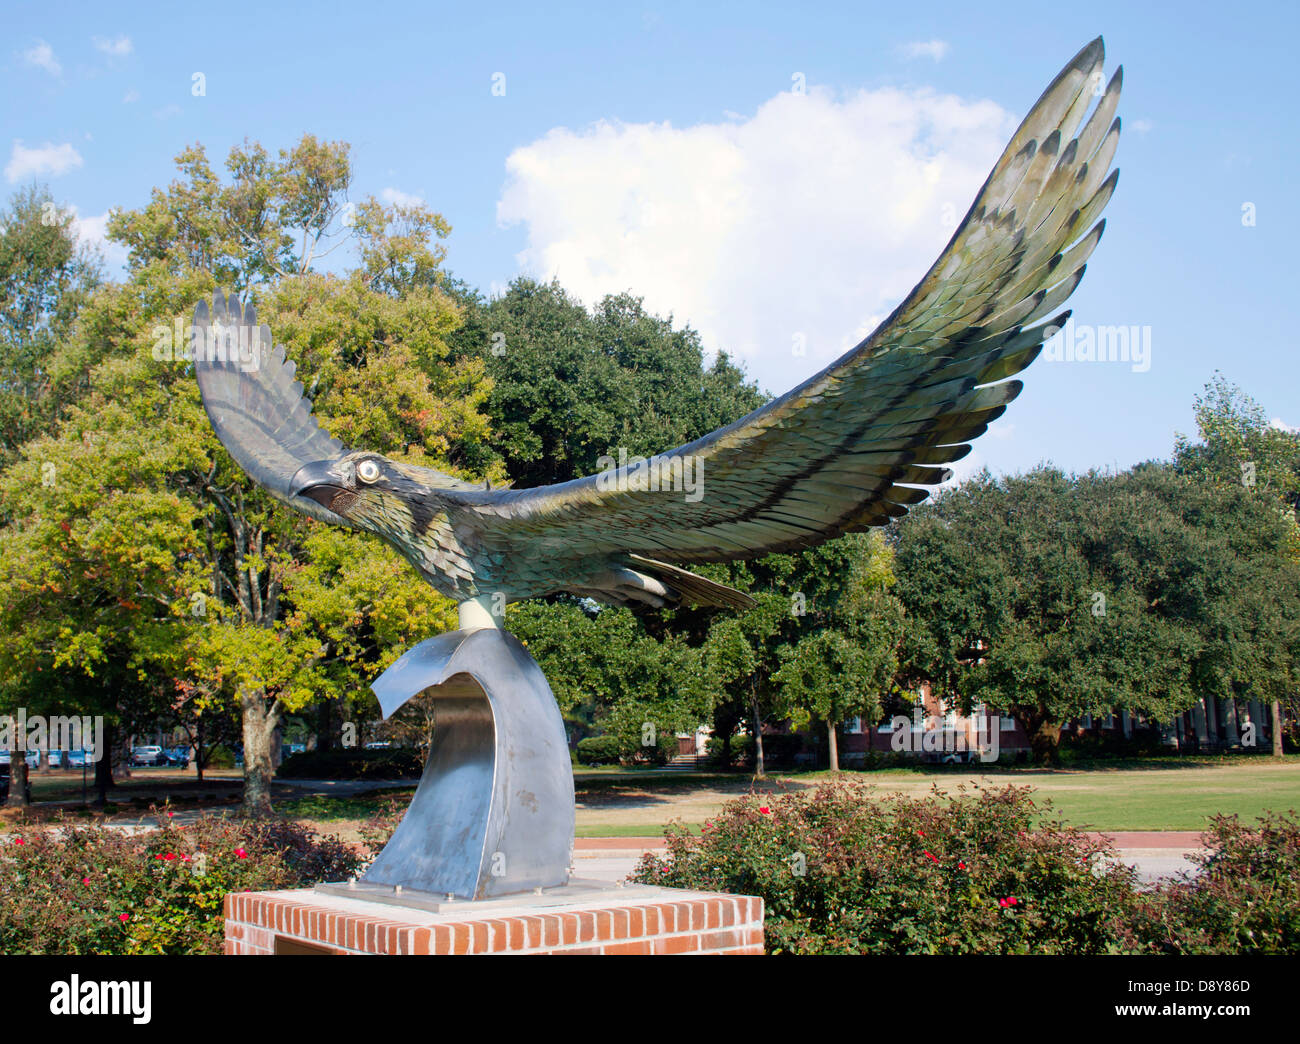 Worlds Largest Seahawk Sculpture at the University of North Carolina in Wilmington Stock Photo